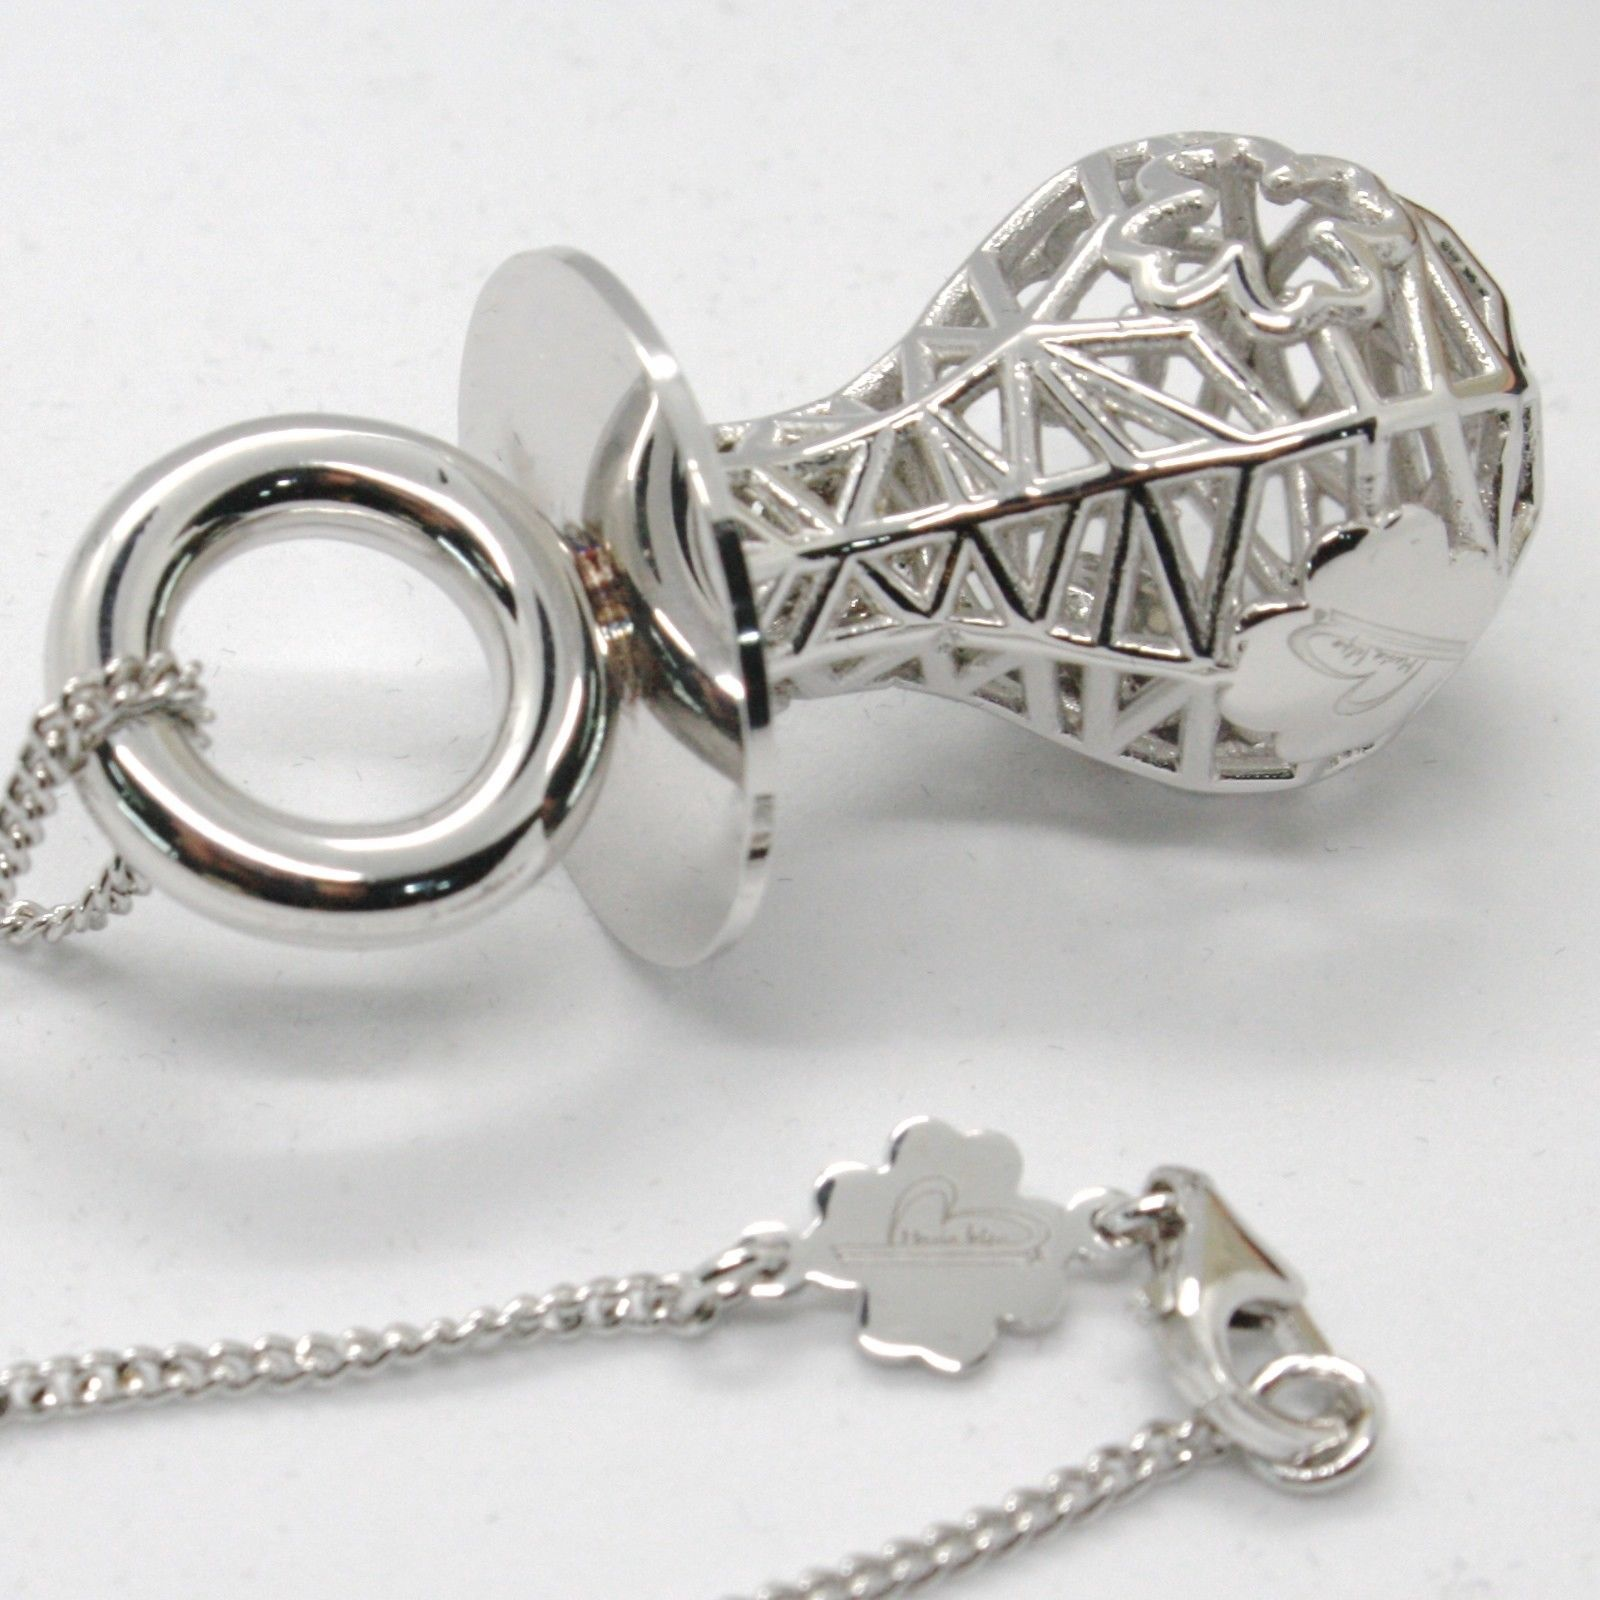 Silver 925 Necklace with Hanging Charm Pacifier Perforated & Knit by Mary Jane